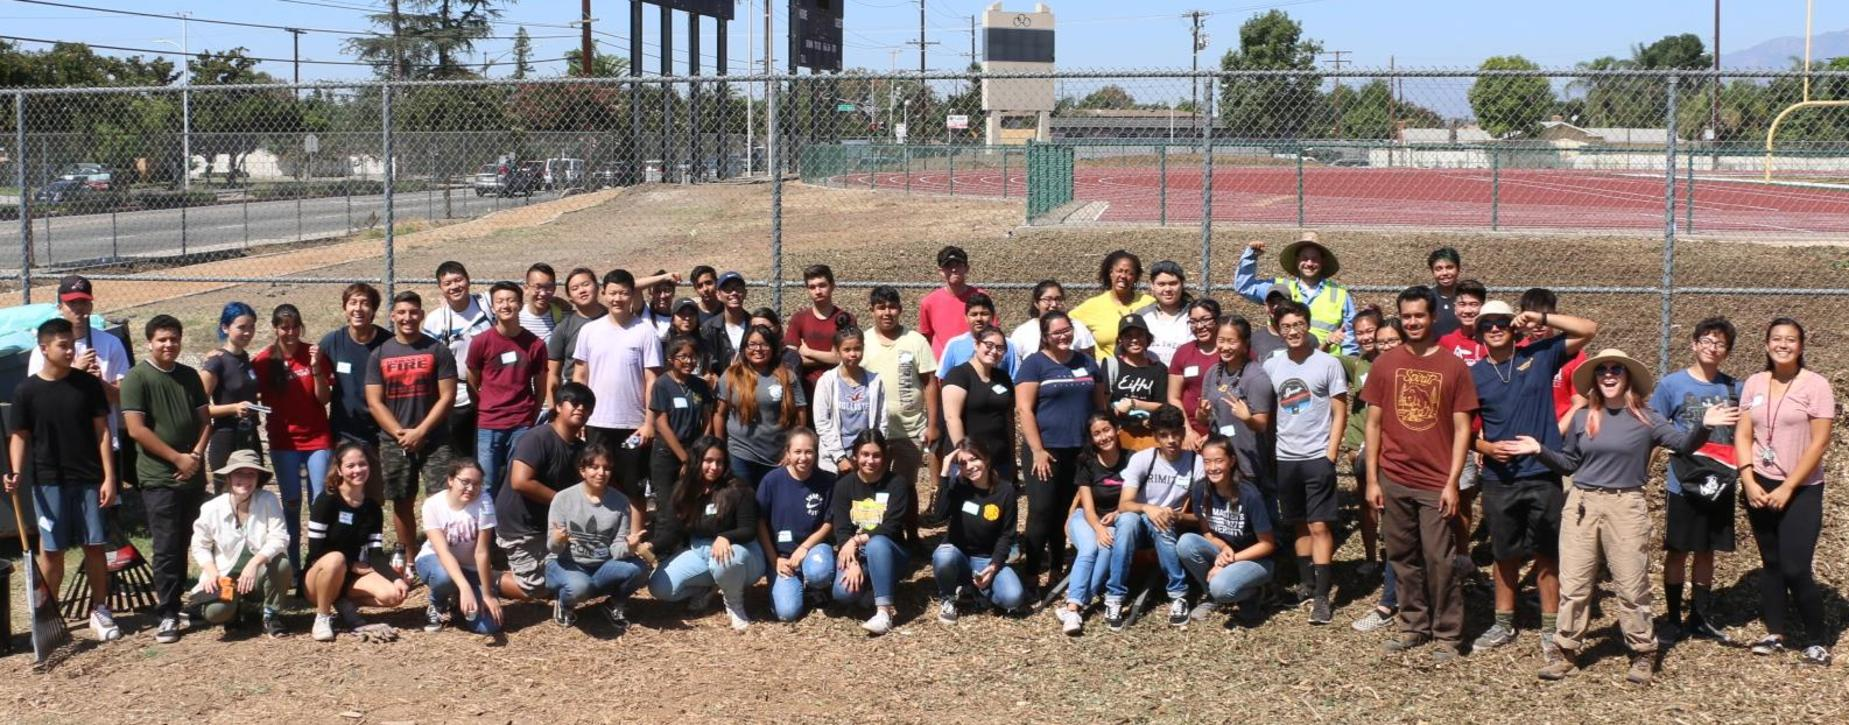 Students participate in the Bassett HS Campus Green Infrastructure project